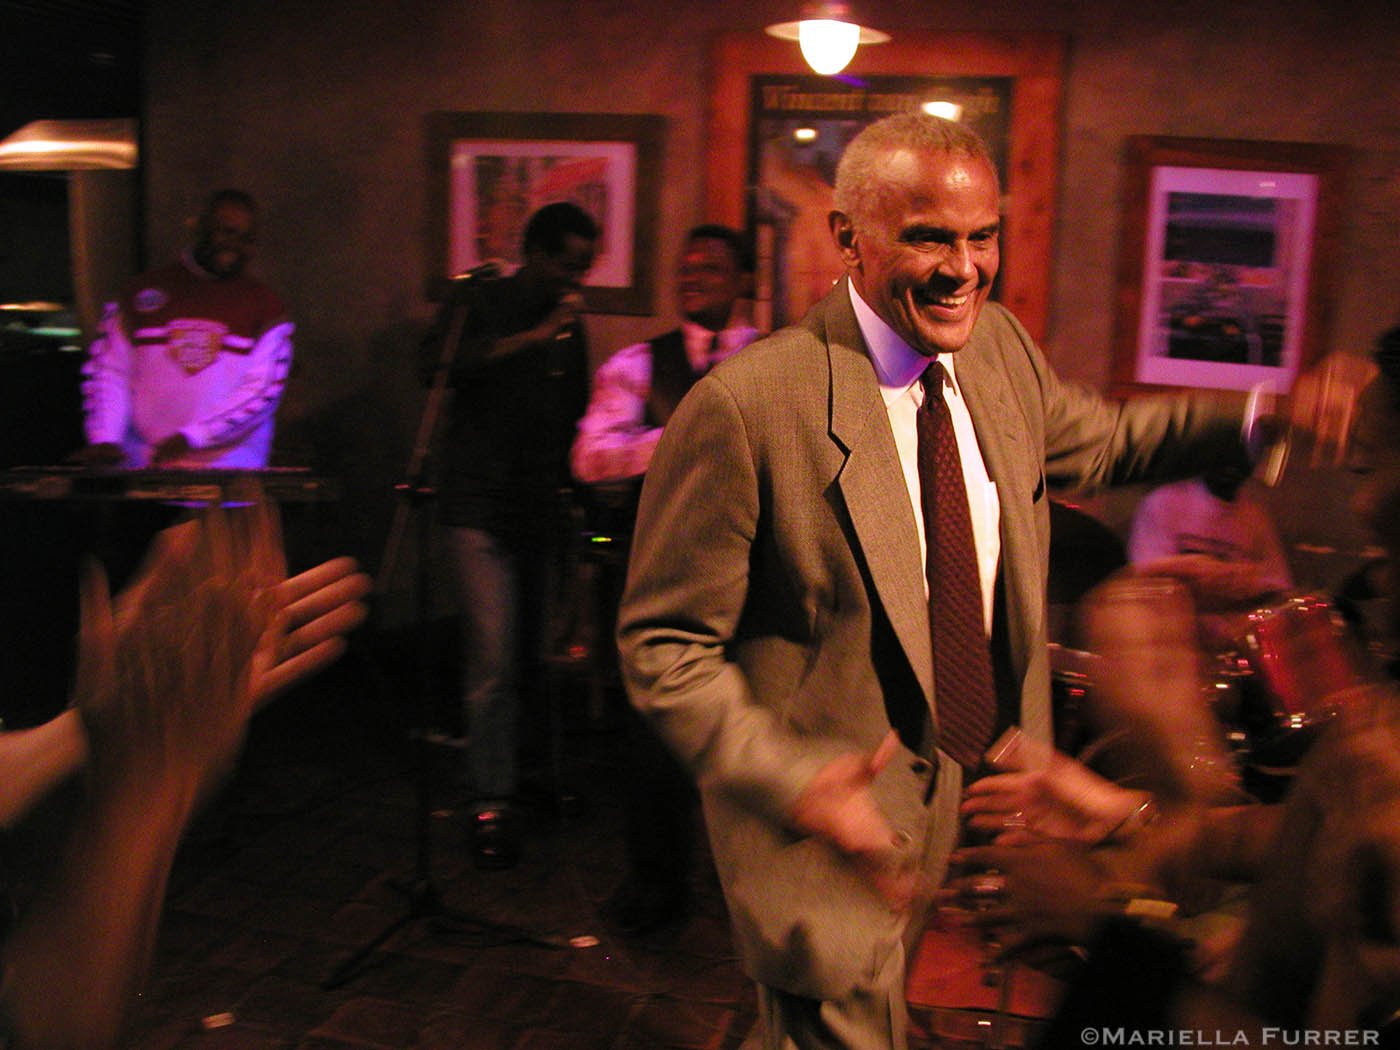 After having a bite a The Pavement, a restaurant in a suburb of Nairobi, Harry Belafonte, performs (two songs) for diners. Nairobi, Kenya.